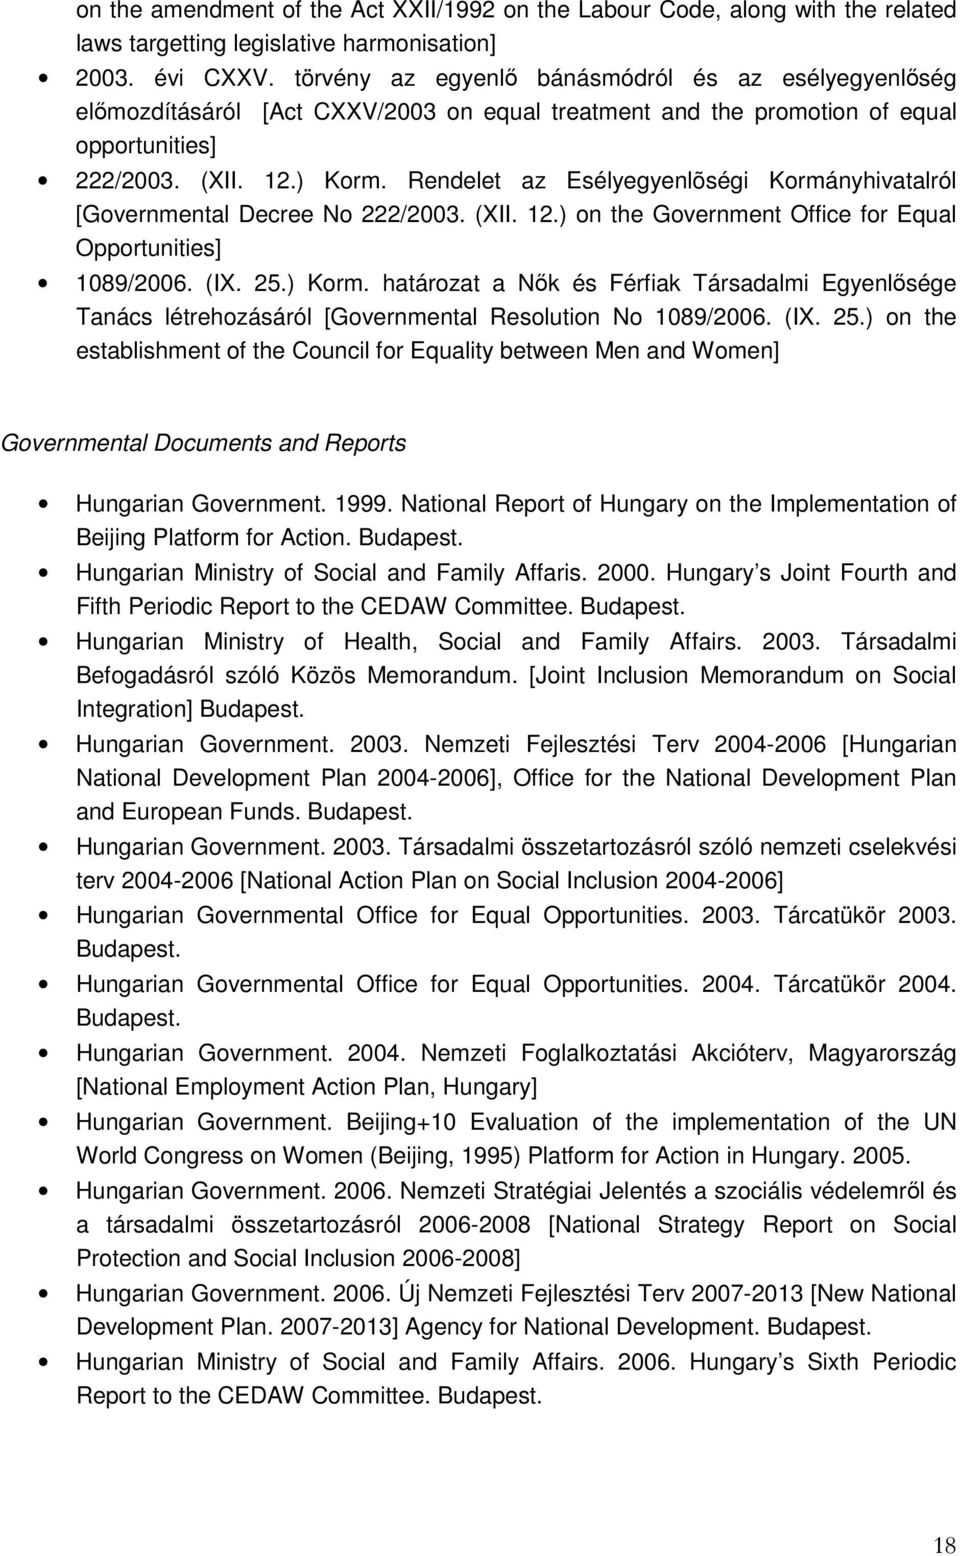 Rendelet az Esélyegyenlõségi Kormányhivatalról [Governmental Decree No 222/2003. (XII. 12.) on the Government Office for Equal Opportunities] 1089/2006. (IX. 25.) Korm.